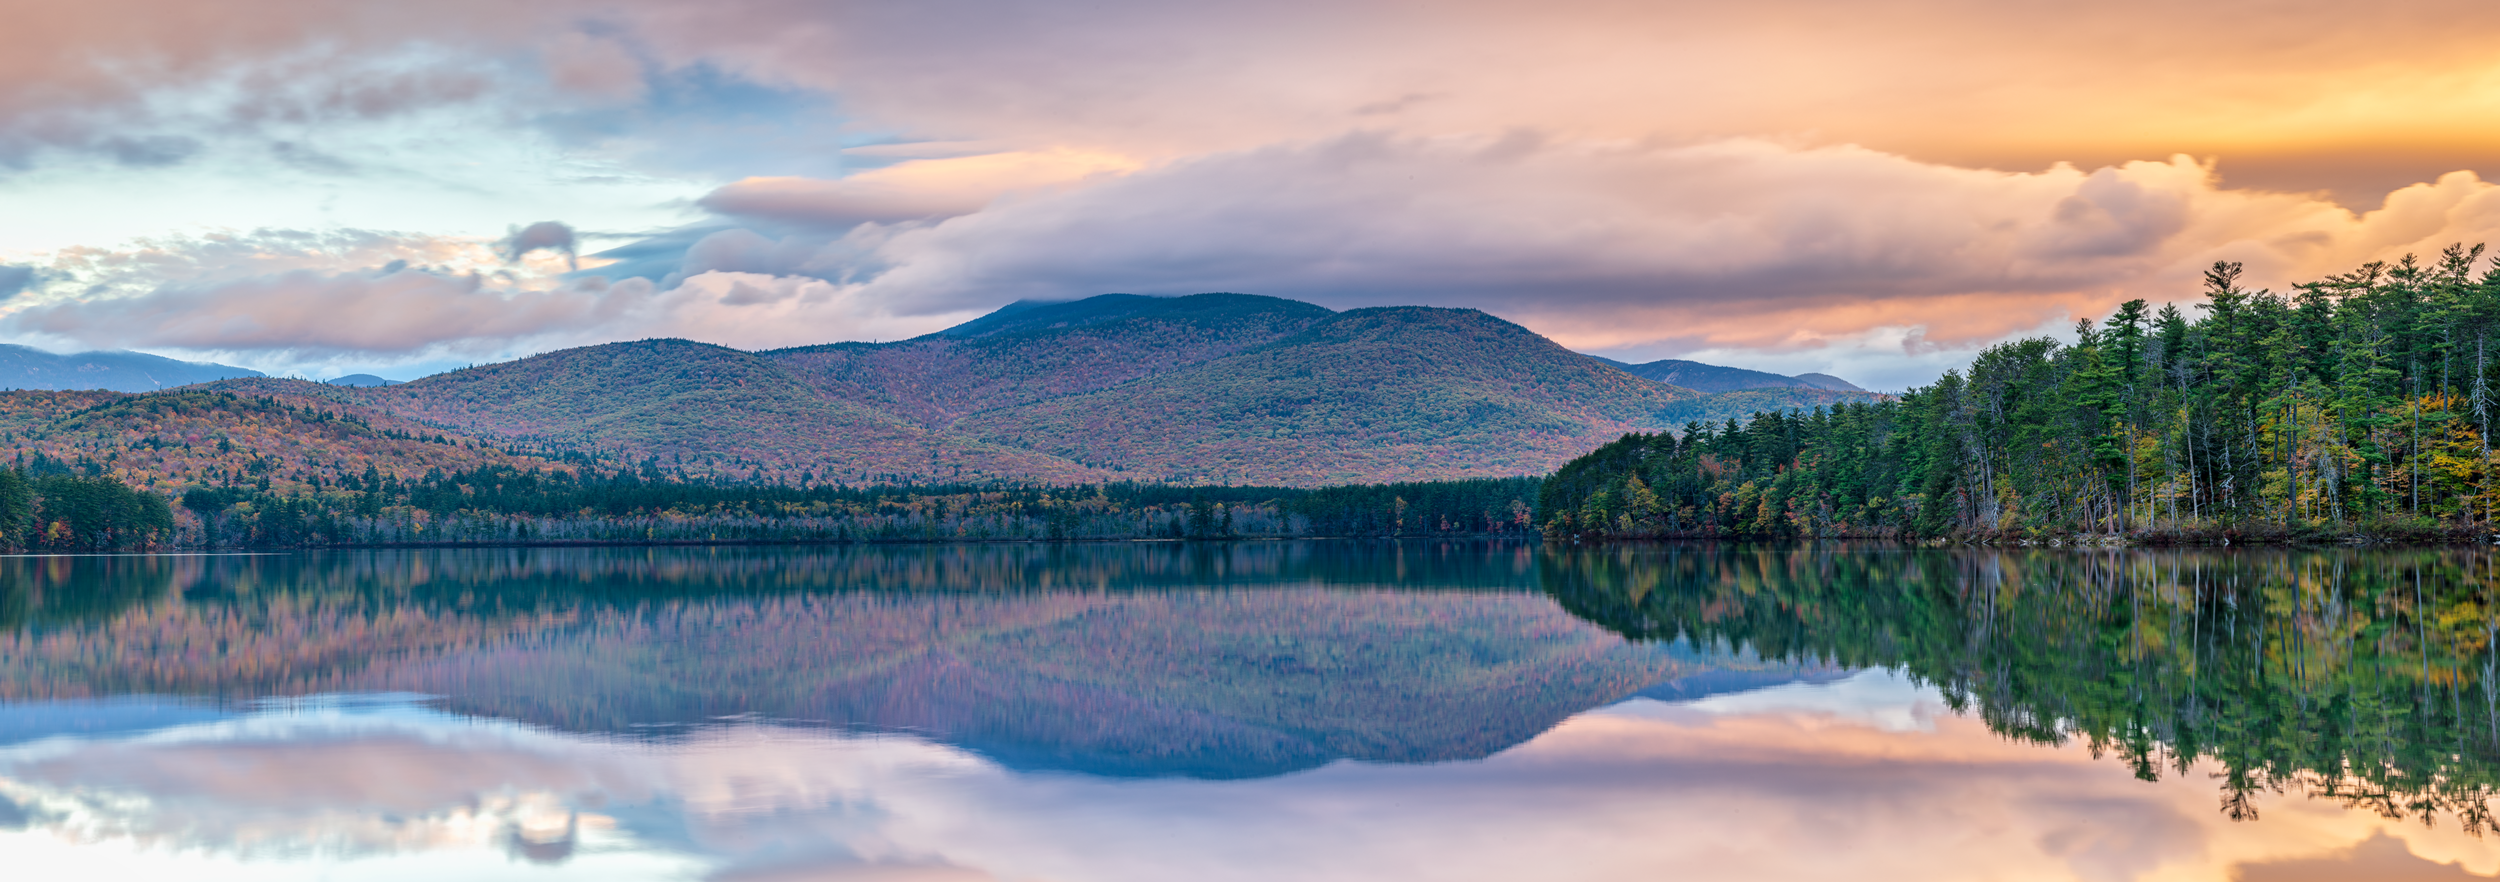 Sunrise Reflection at Chocorua Lake